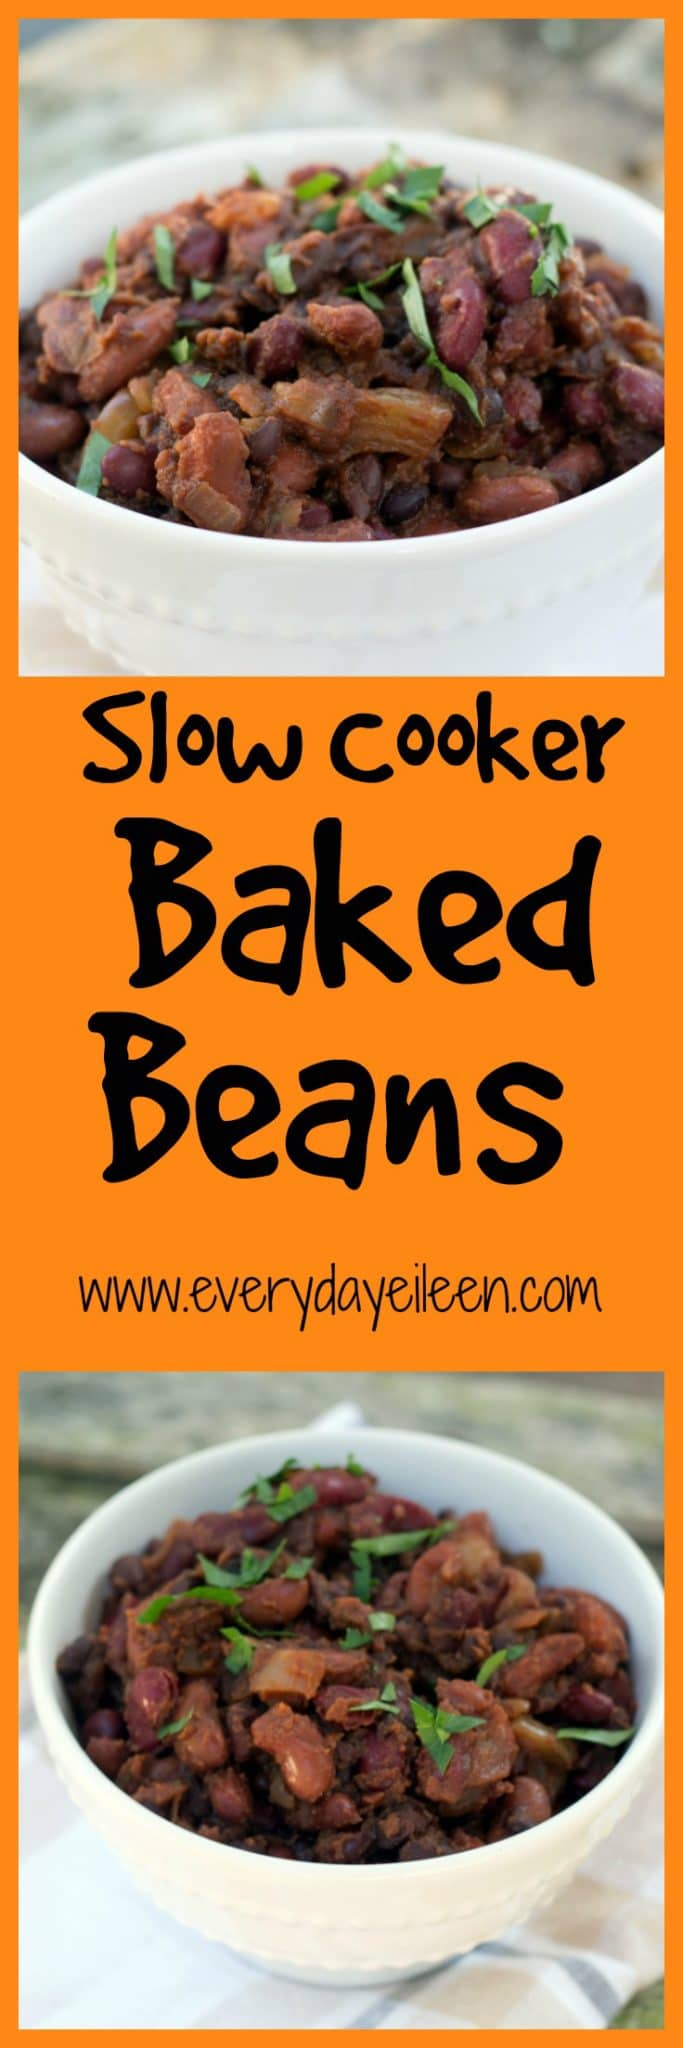 Slow Cooker Baked Beans - Everyday Eileen